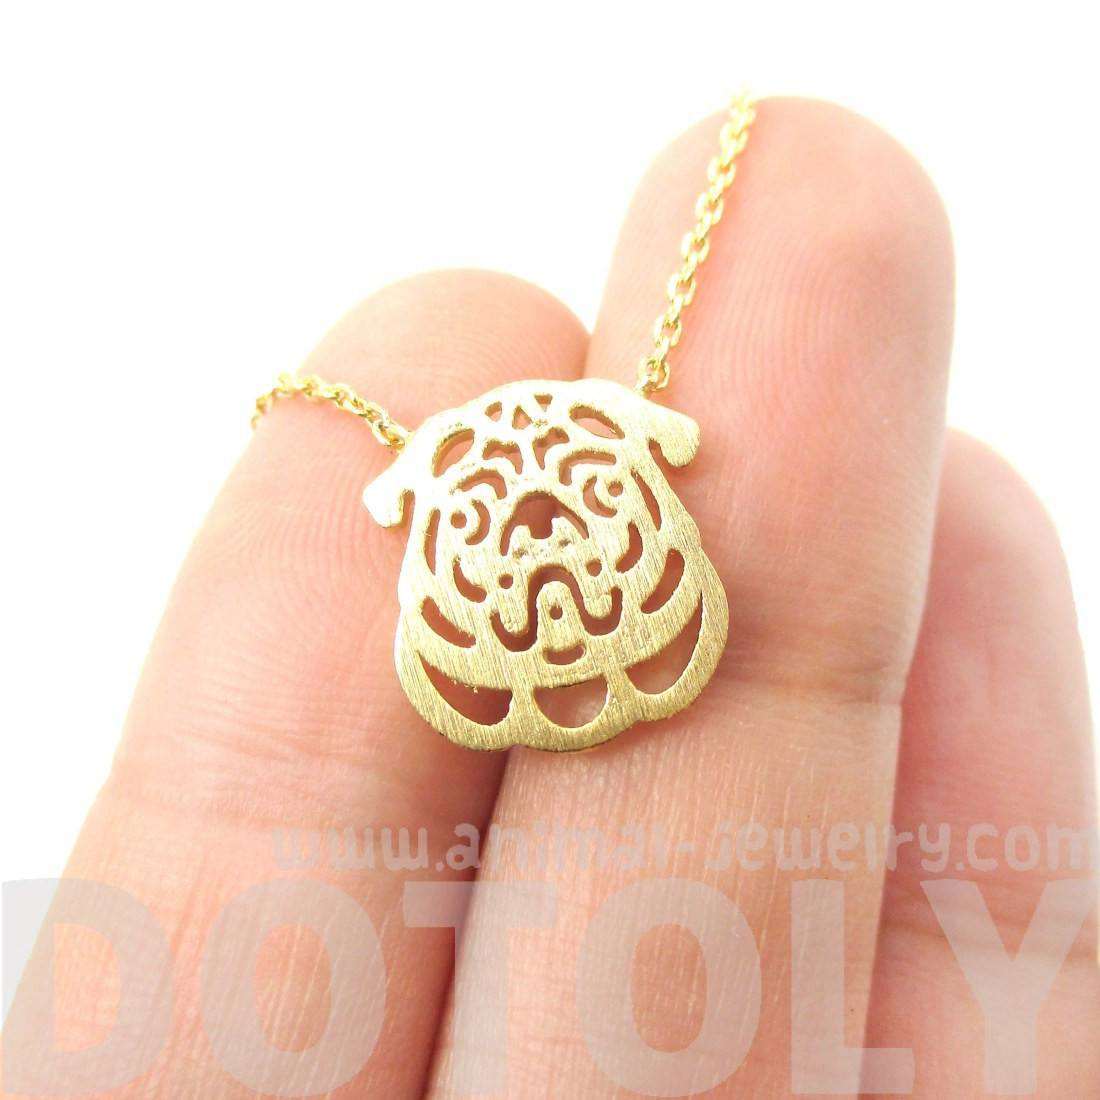 Adorable Pug Puppy Dog Face Shaped Dye Cut Pendant Necklace in Gold